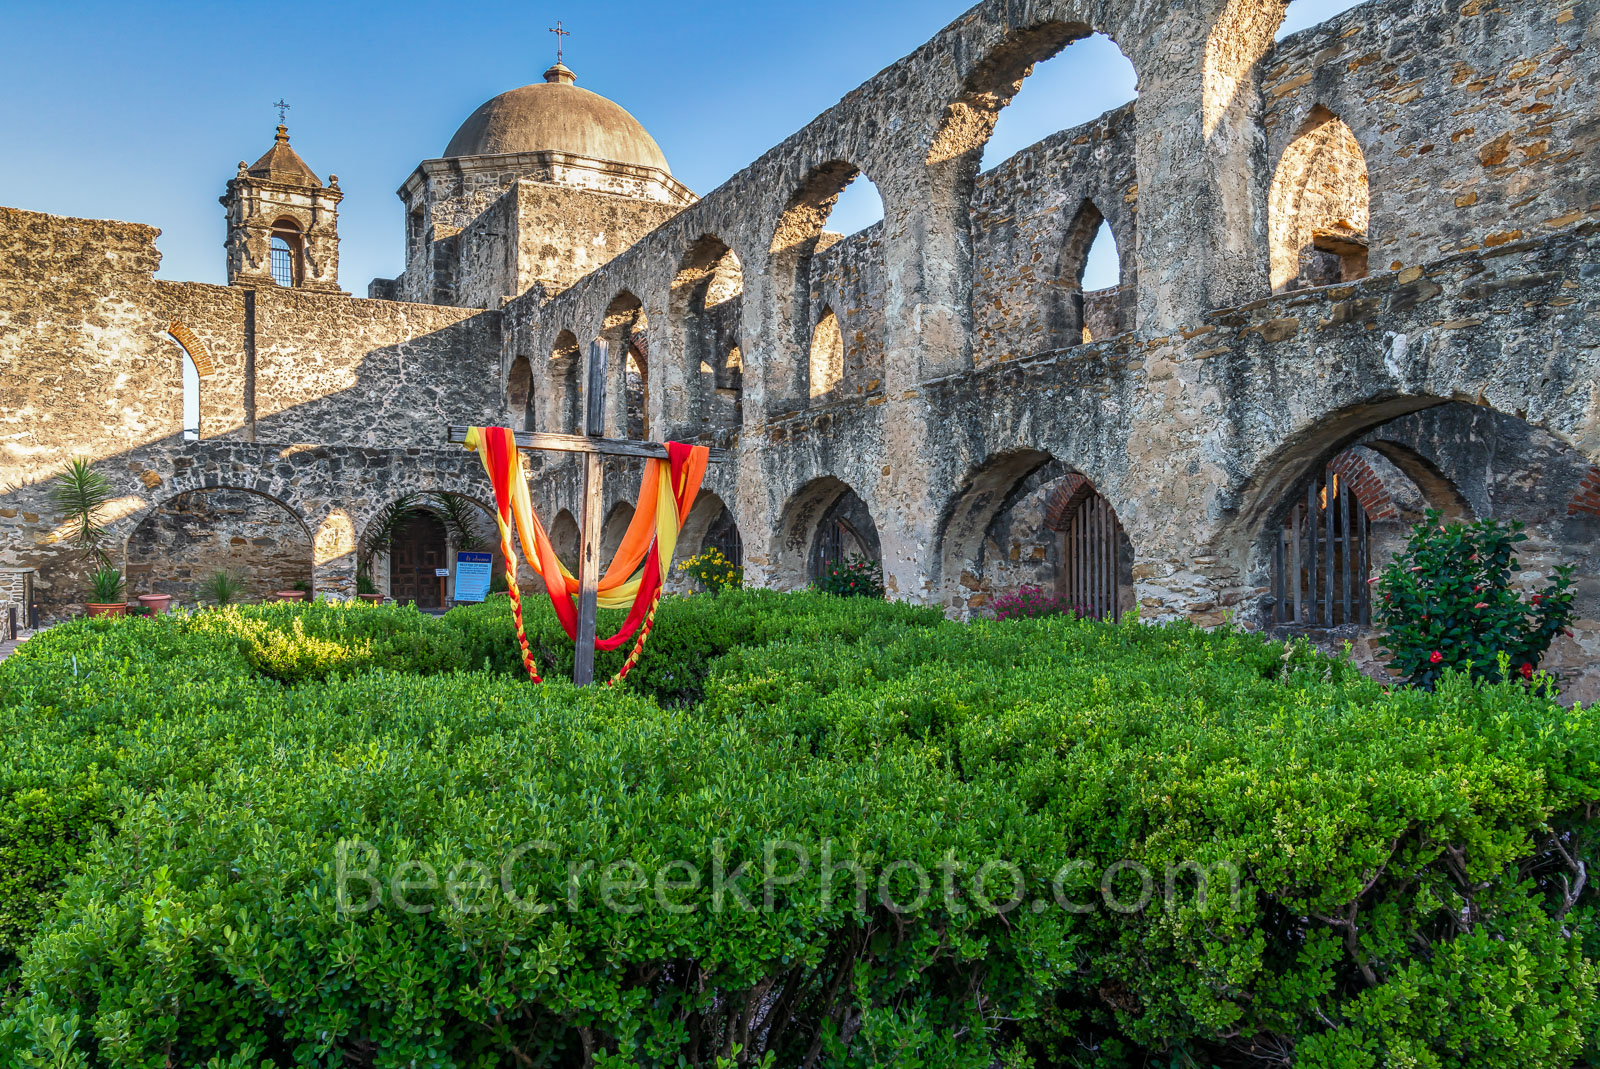 San Antonio, historic, landmarks, mission, missions, Flying Buttresses, Mission San Jose, holy cross, San Antonio Texas, downtown, tourism, tourist, travel, images of missions, photos of missions, pic, photo